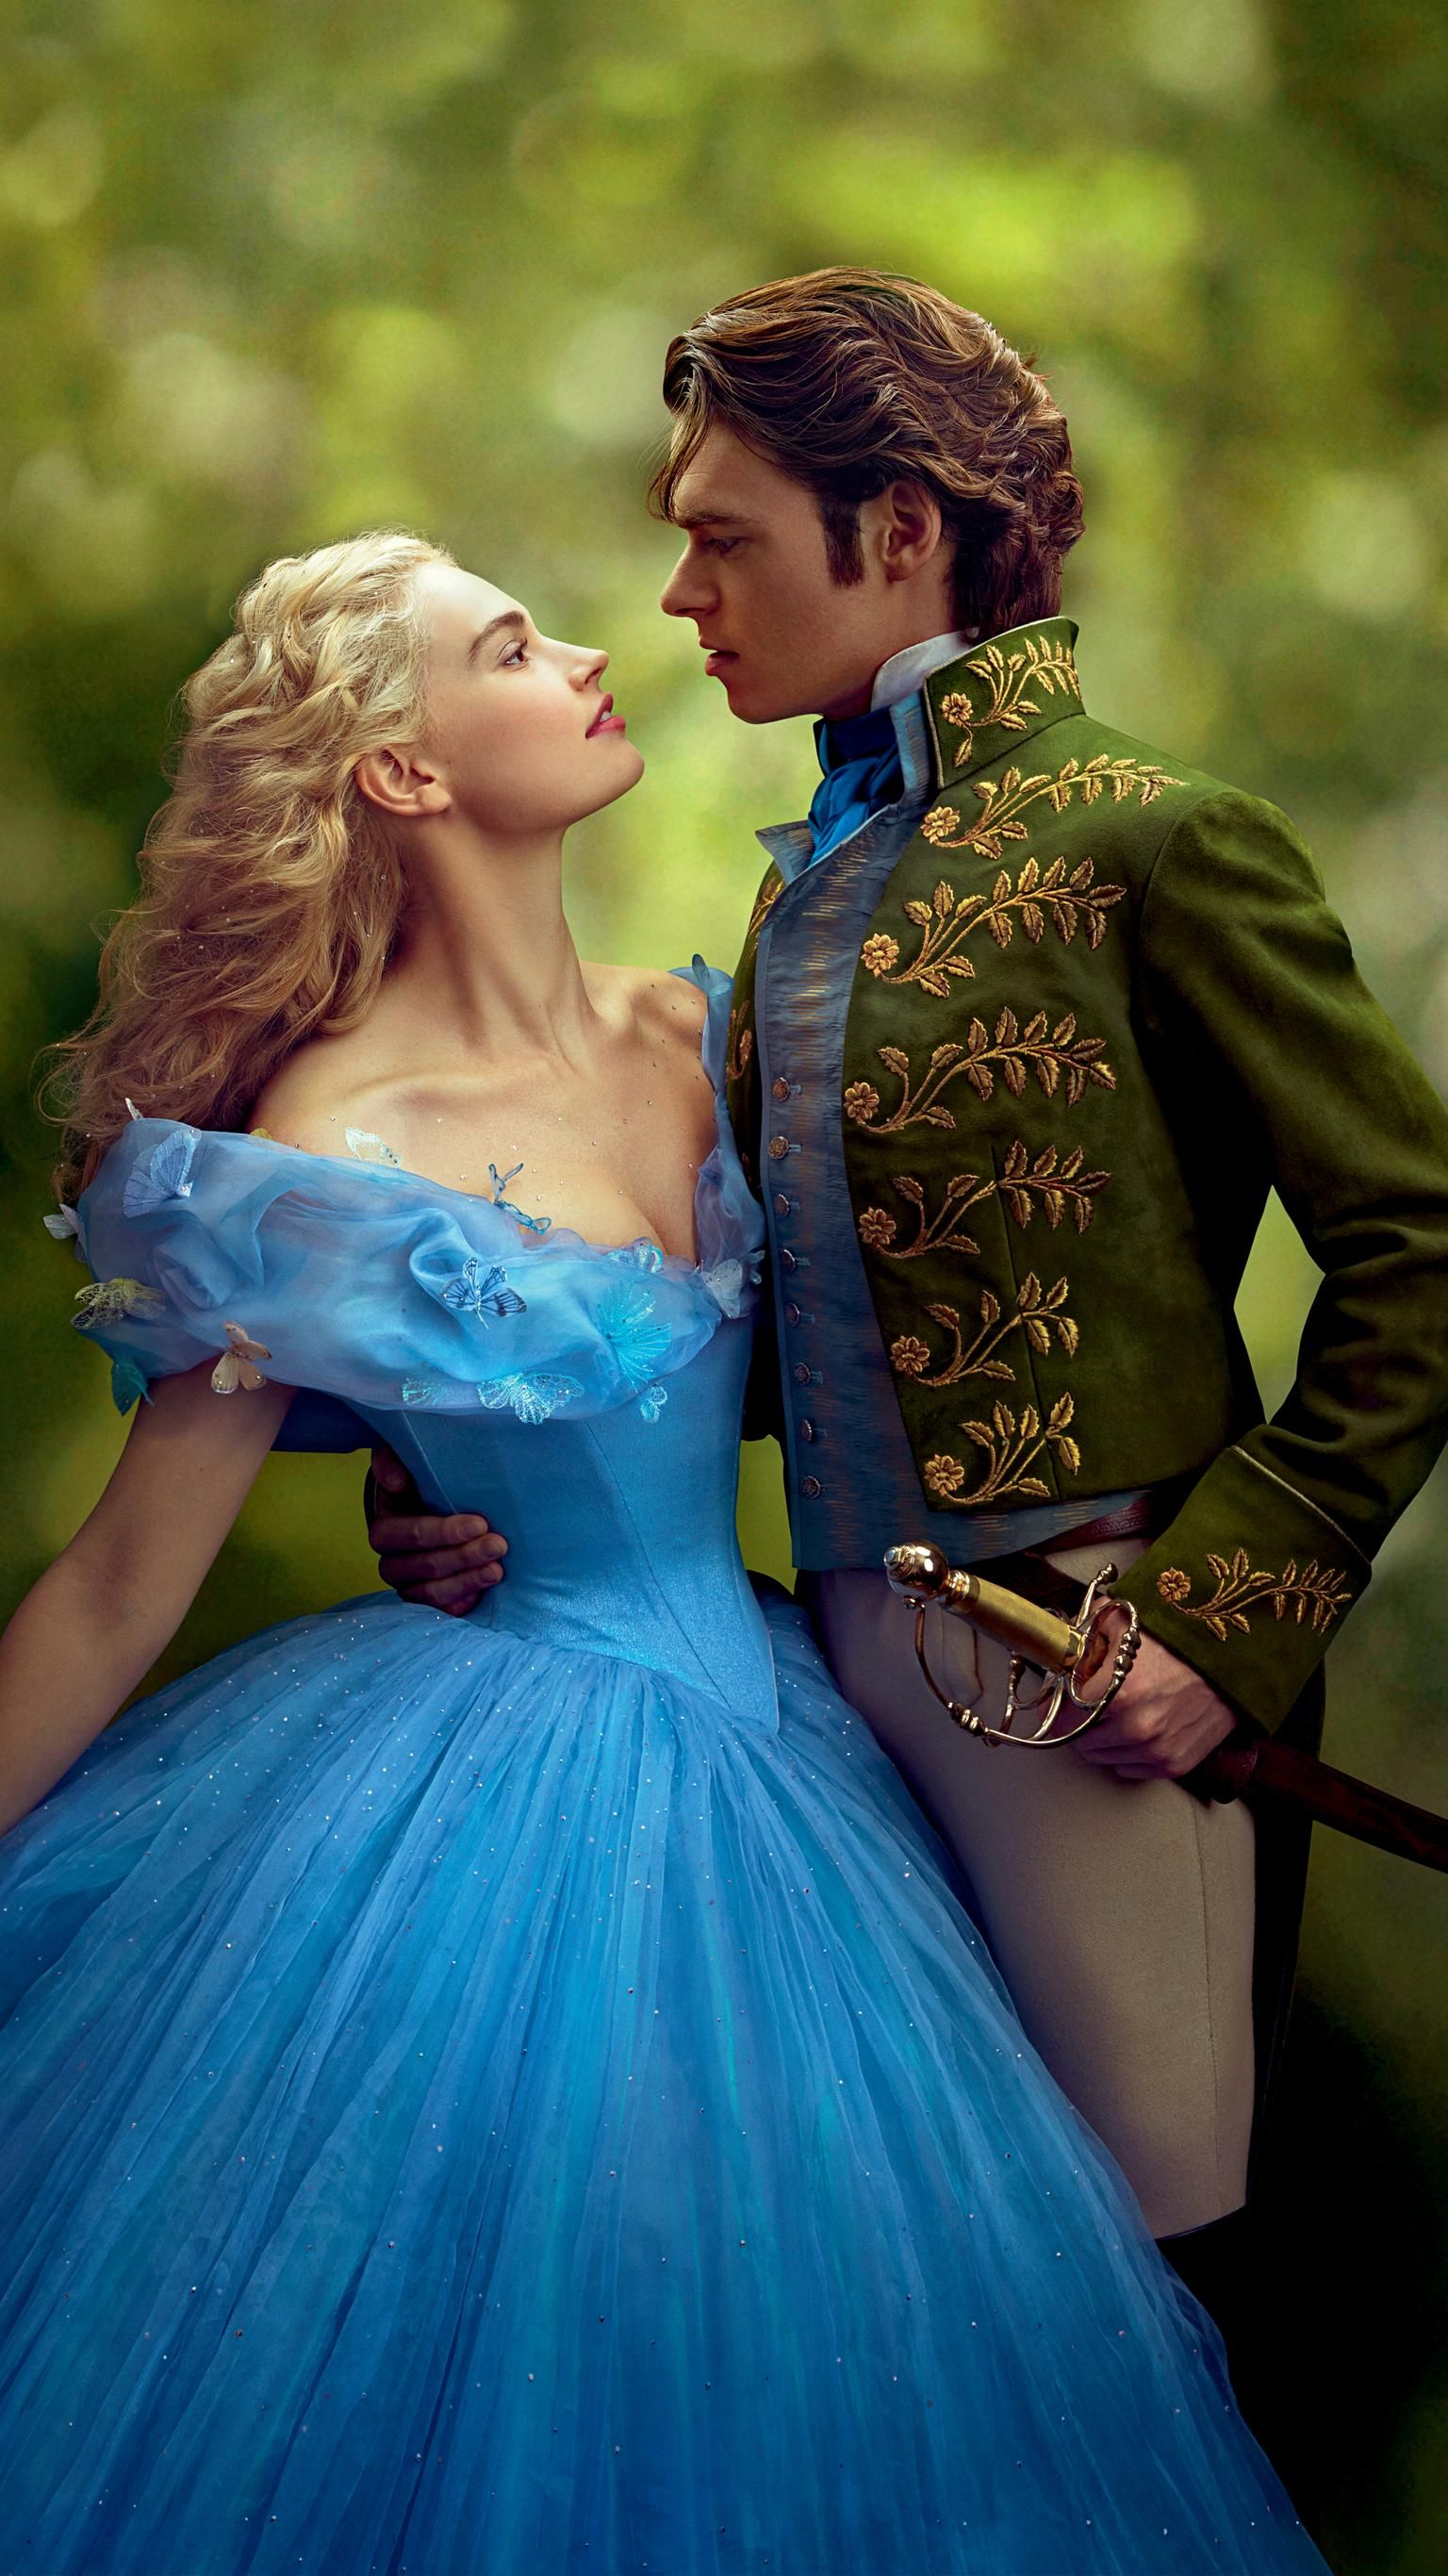 Cinderella 2015 Phone Wallpaper Moviemania In 2020 Cinderella Movie Cinderella Cinderella 2015